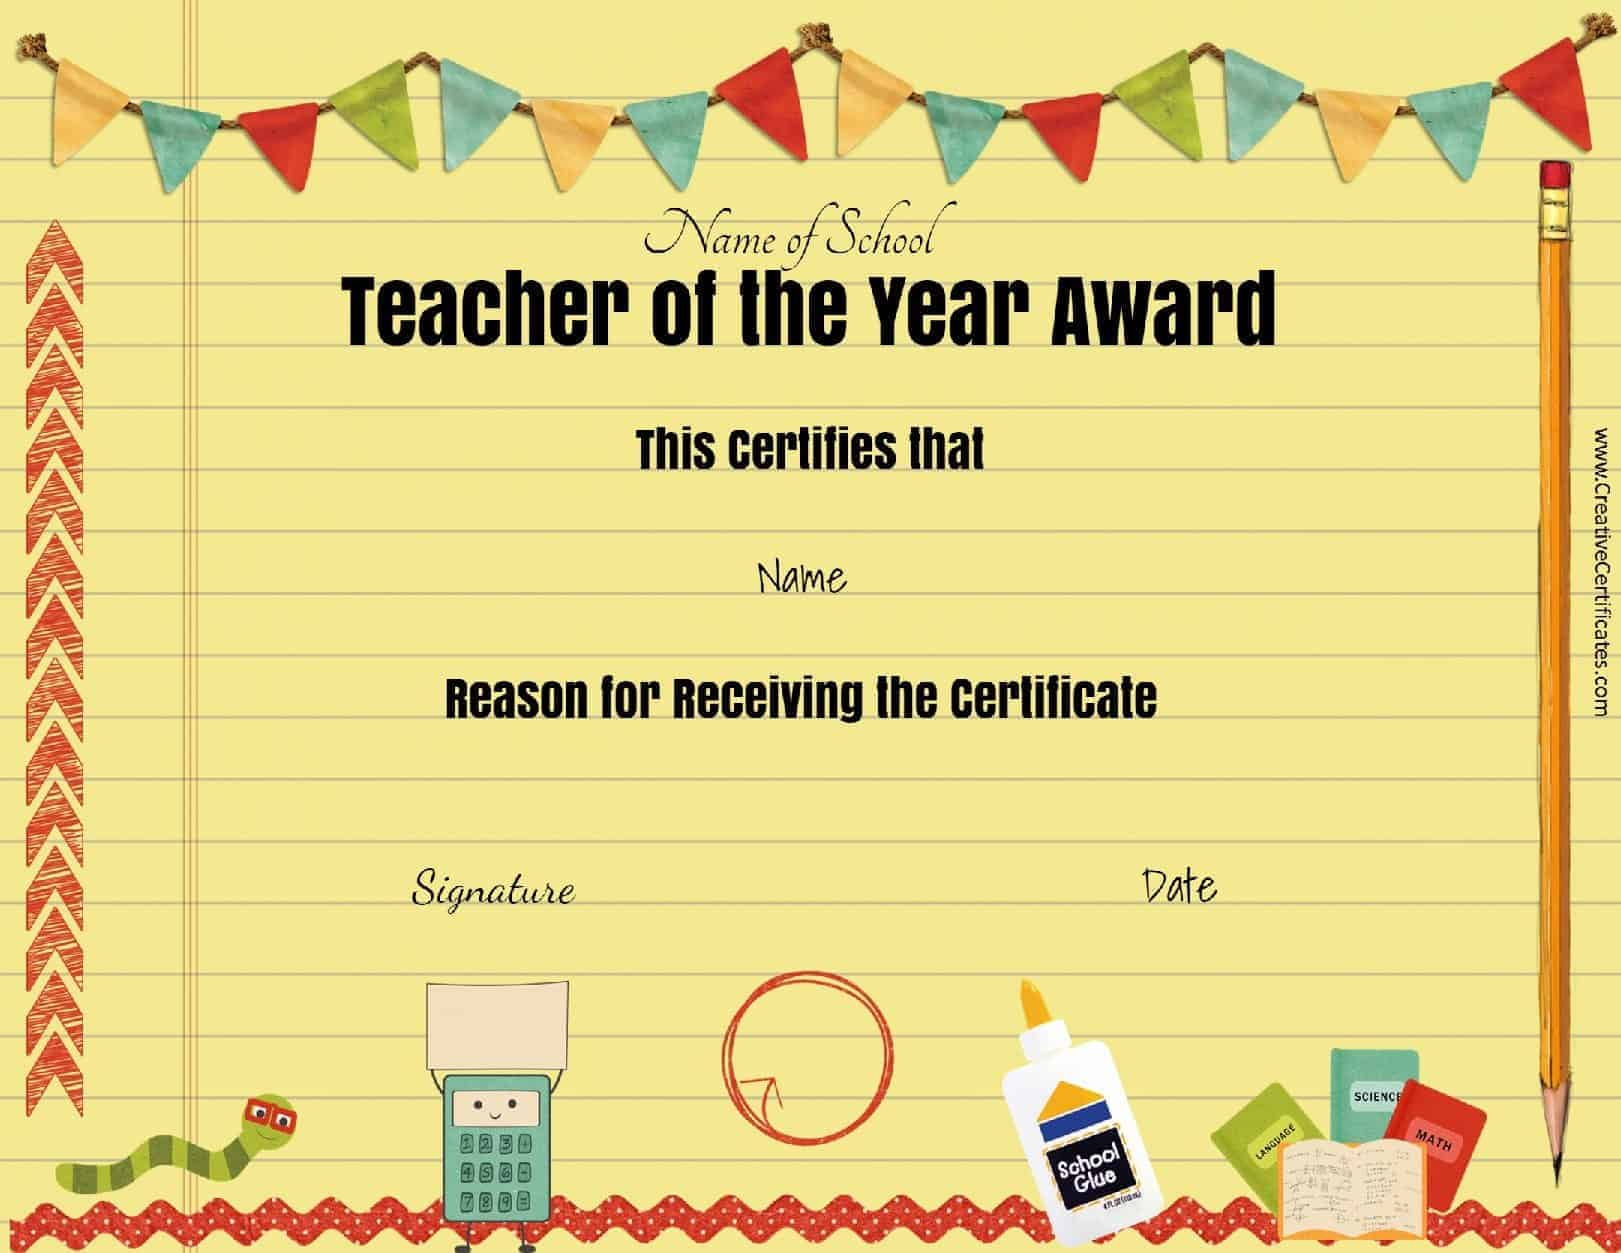 Free teacher awards customize printwithout watermark customize printwith watermark xflitez Gallery